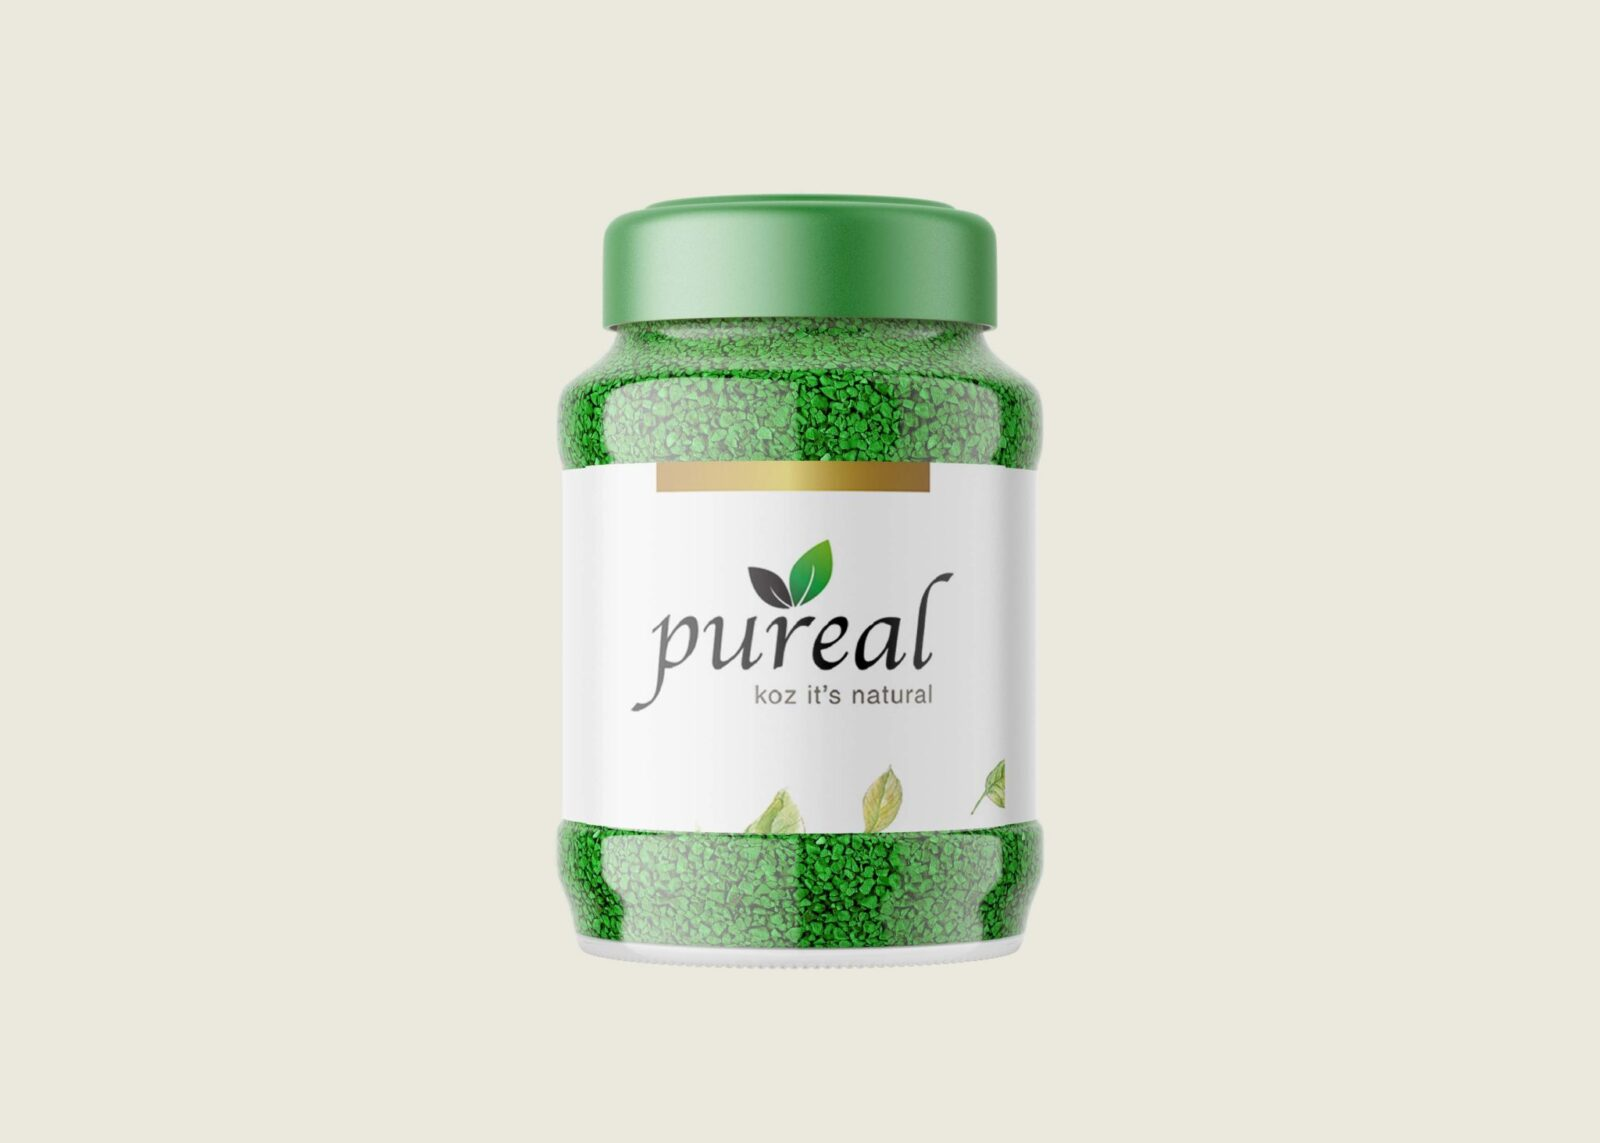 Pureal Green Tea Pea Beans Bottle Mockup